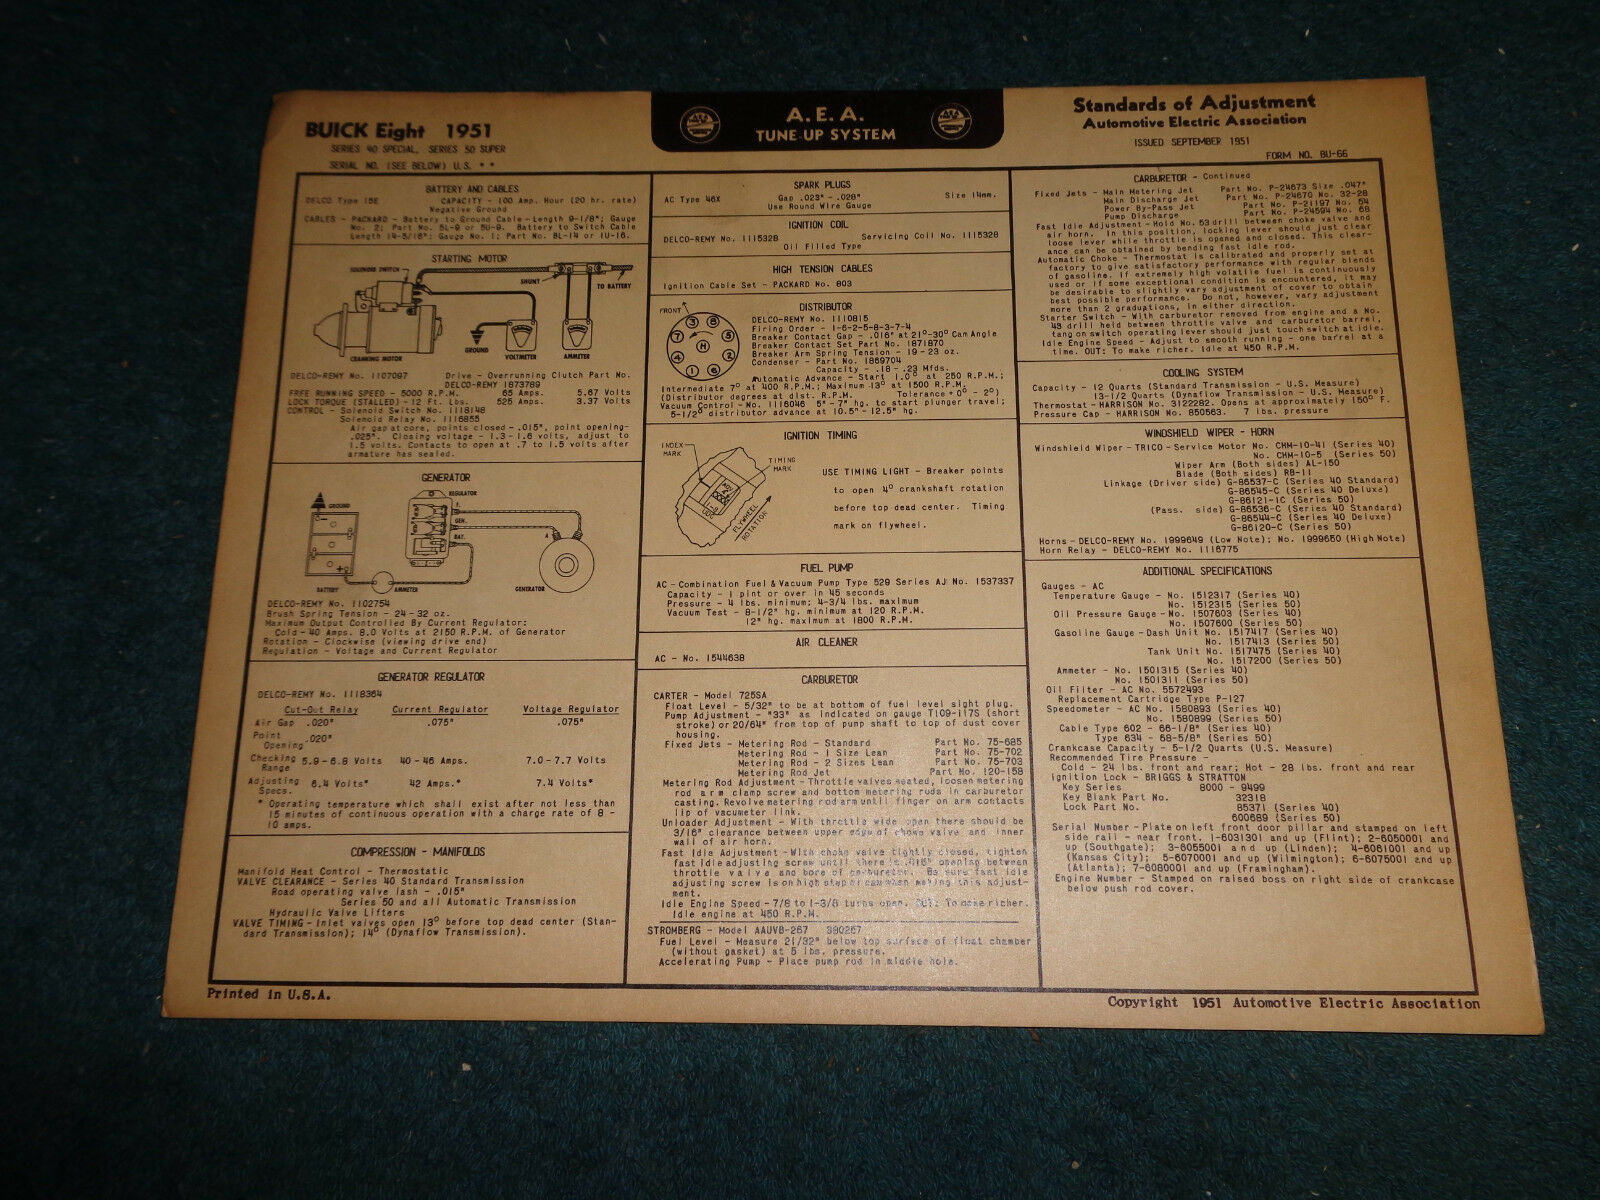 1952 Buick Super Wiring Diagram Electrical Diagrams 1941 Free 1951 Special V 8 Tune Up Chart 1965 Skylark